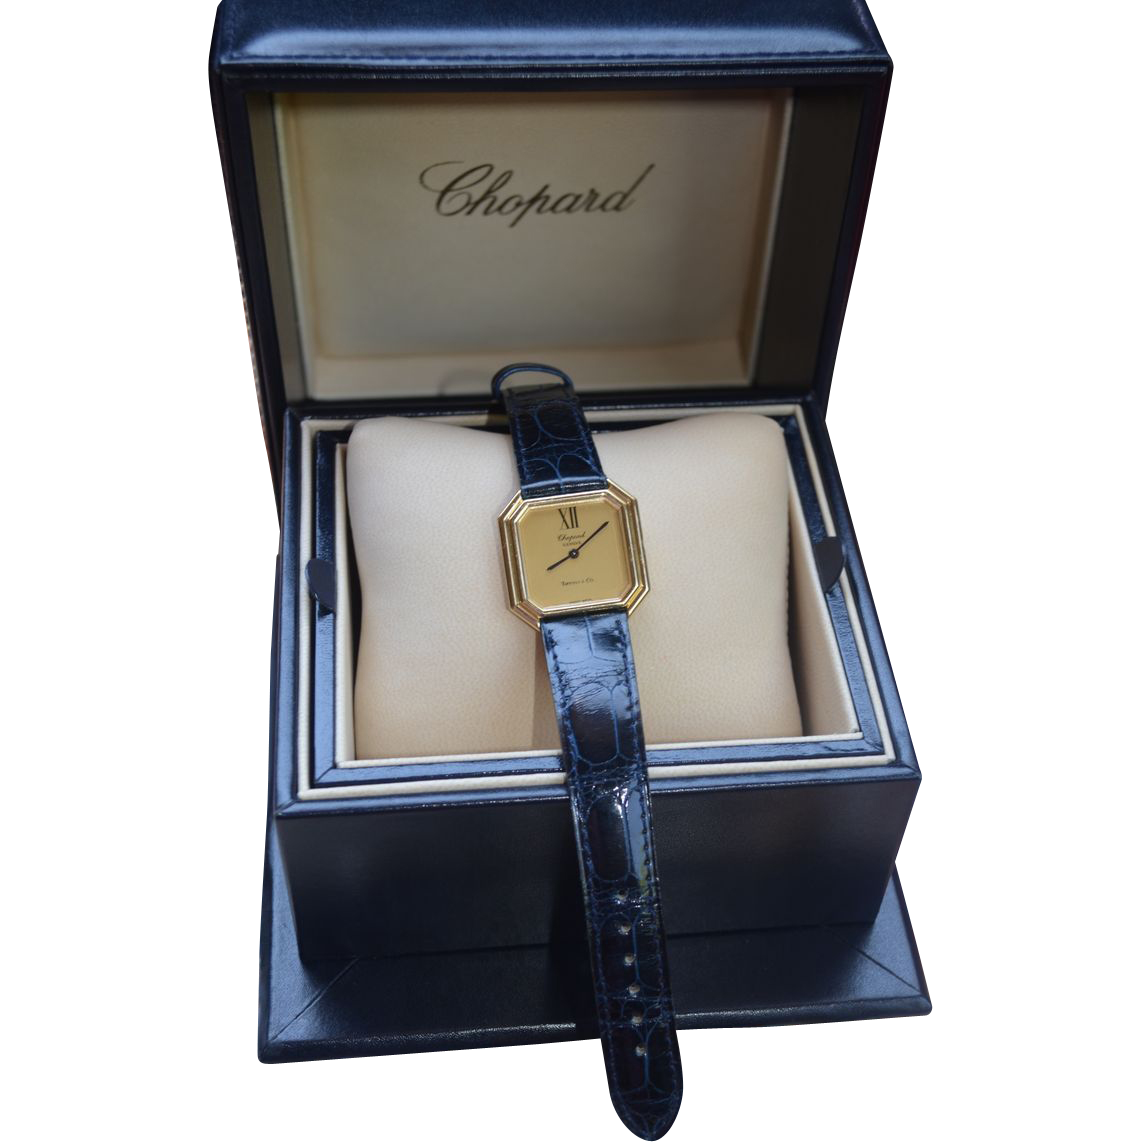 Tiffany & Co / Chopard 18K Gold  Hexagon Deco Inspired Watch